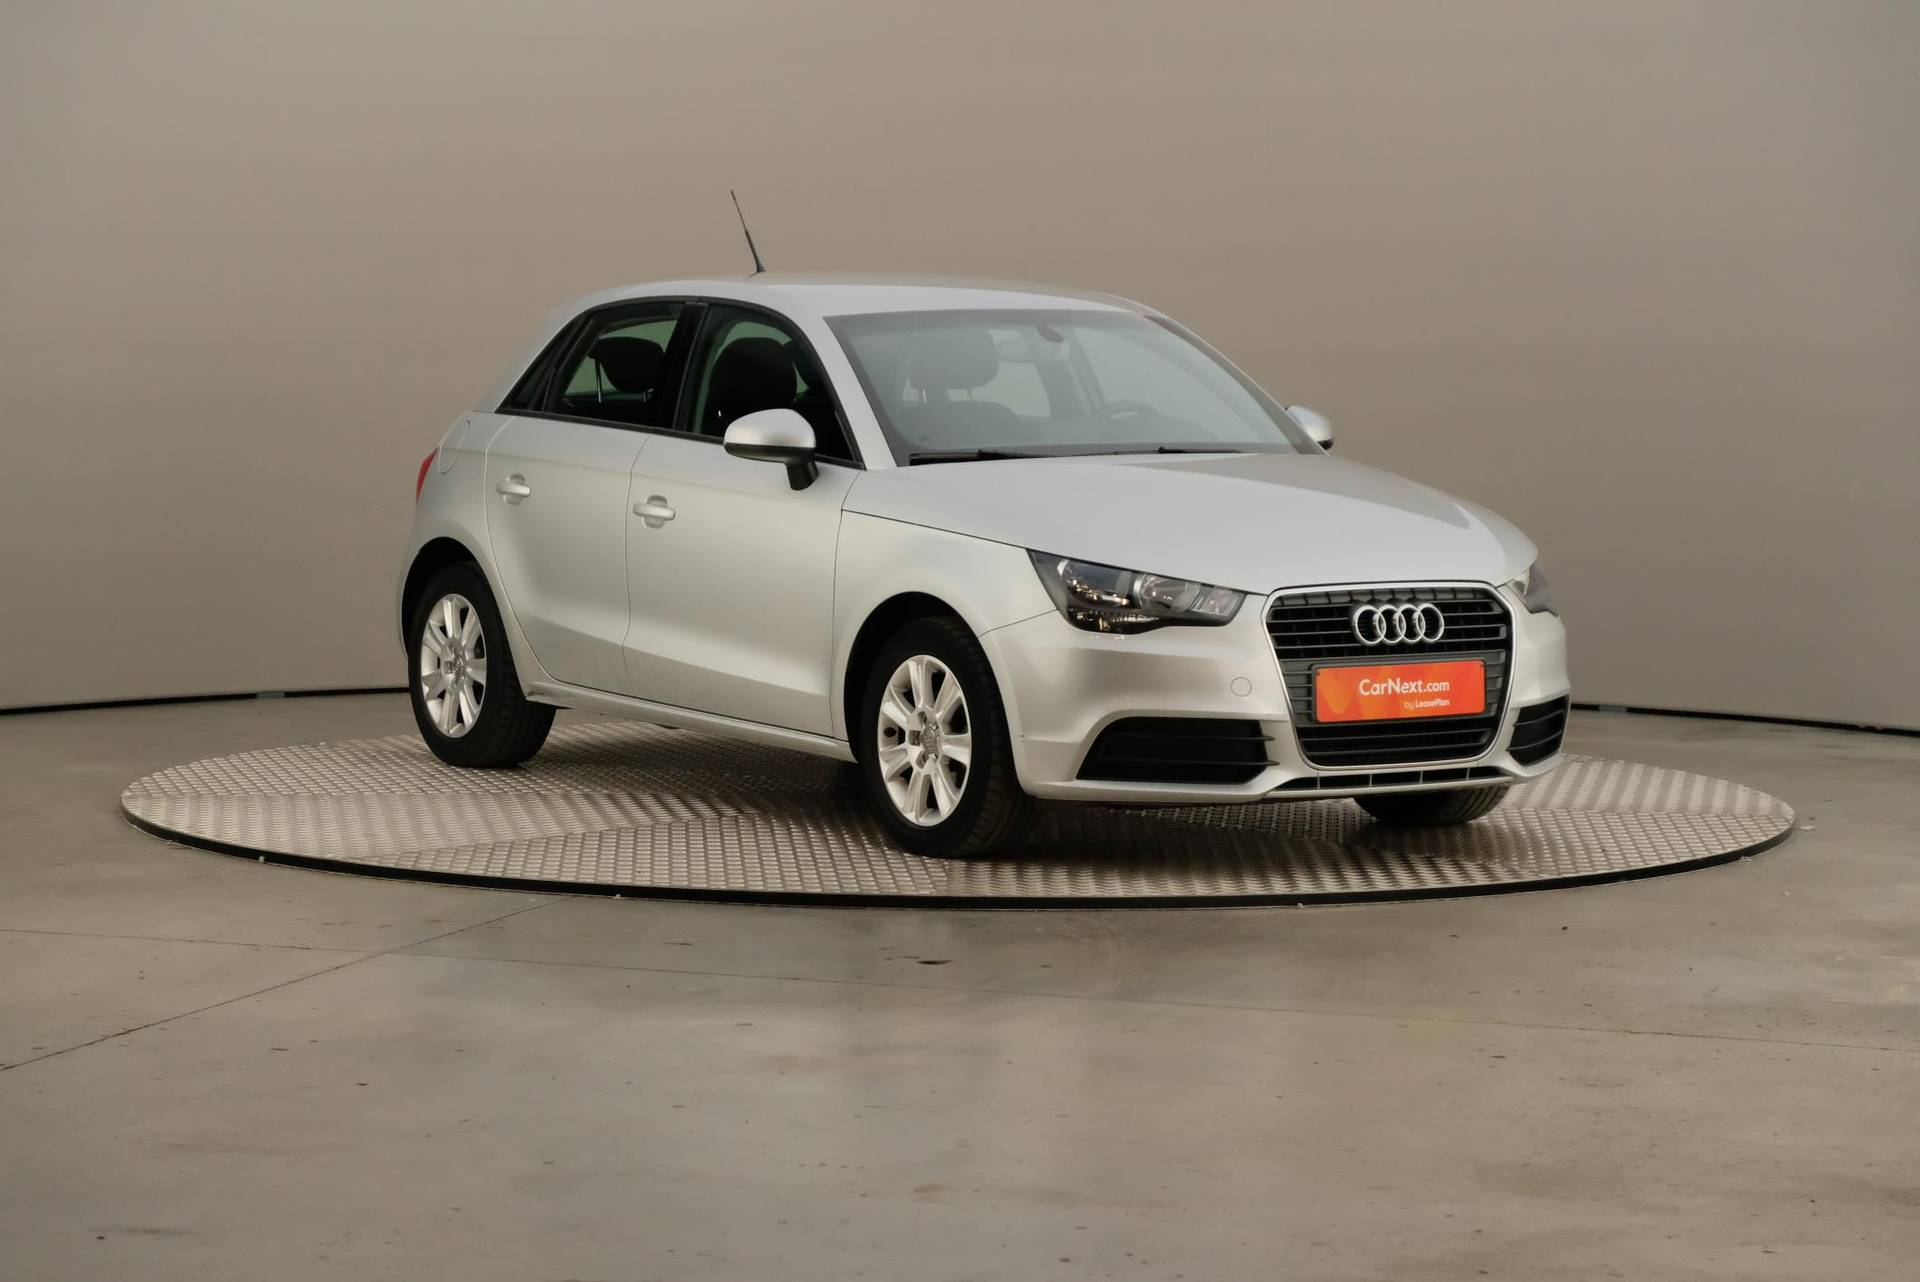 Audi A1 1.6 TDI Sportback, Attraction S&S PDC BT, 360-image28